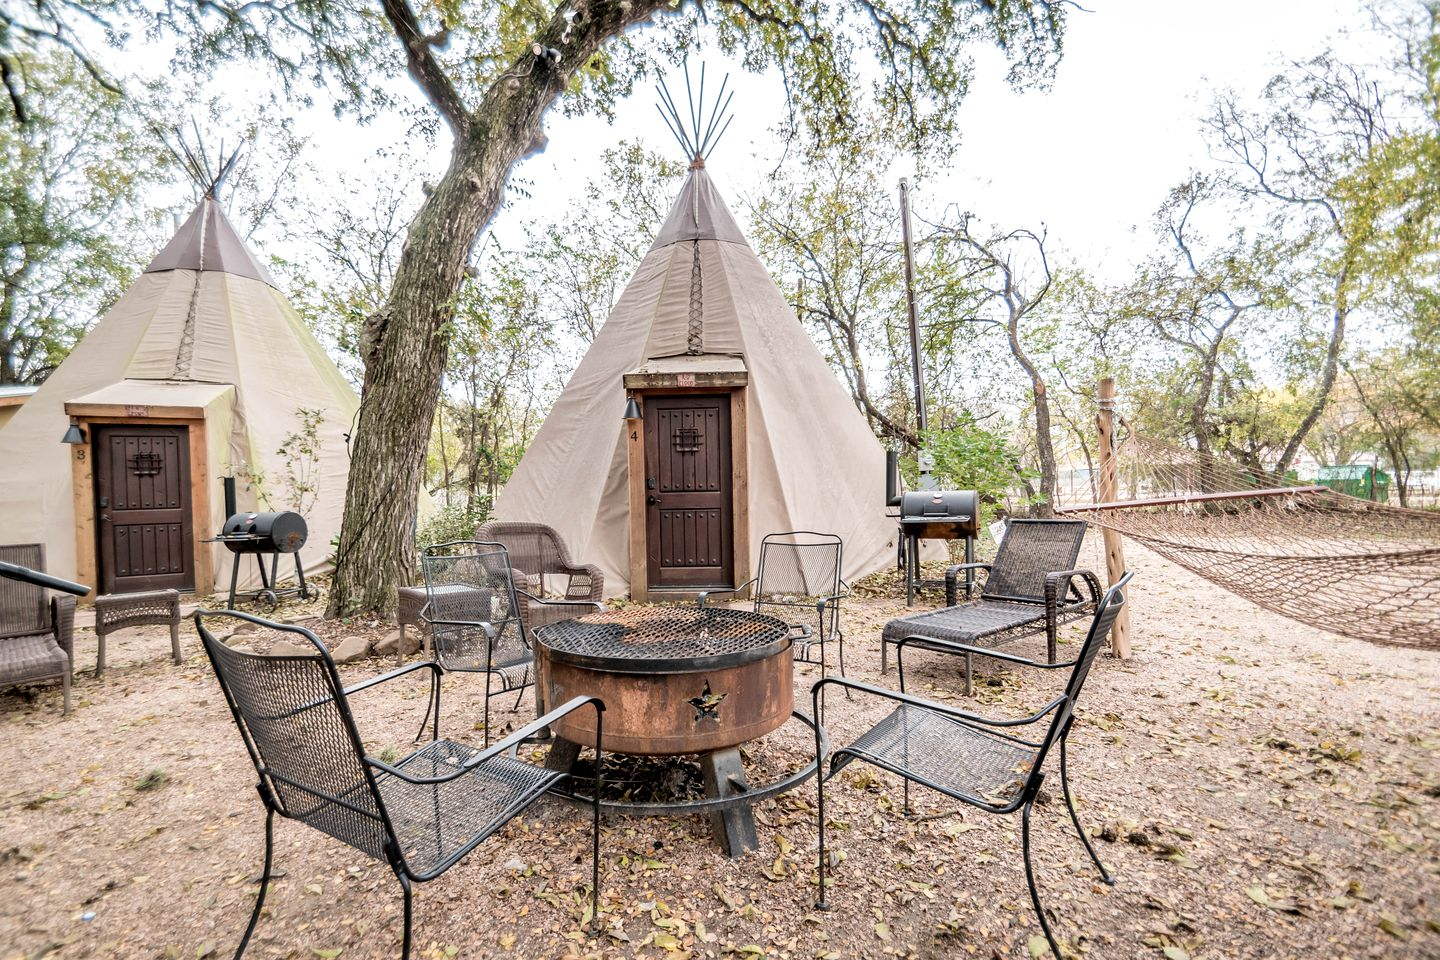 Sleep in a Teepee rental (New Braunfels, Texas, United States)